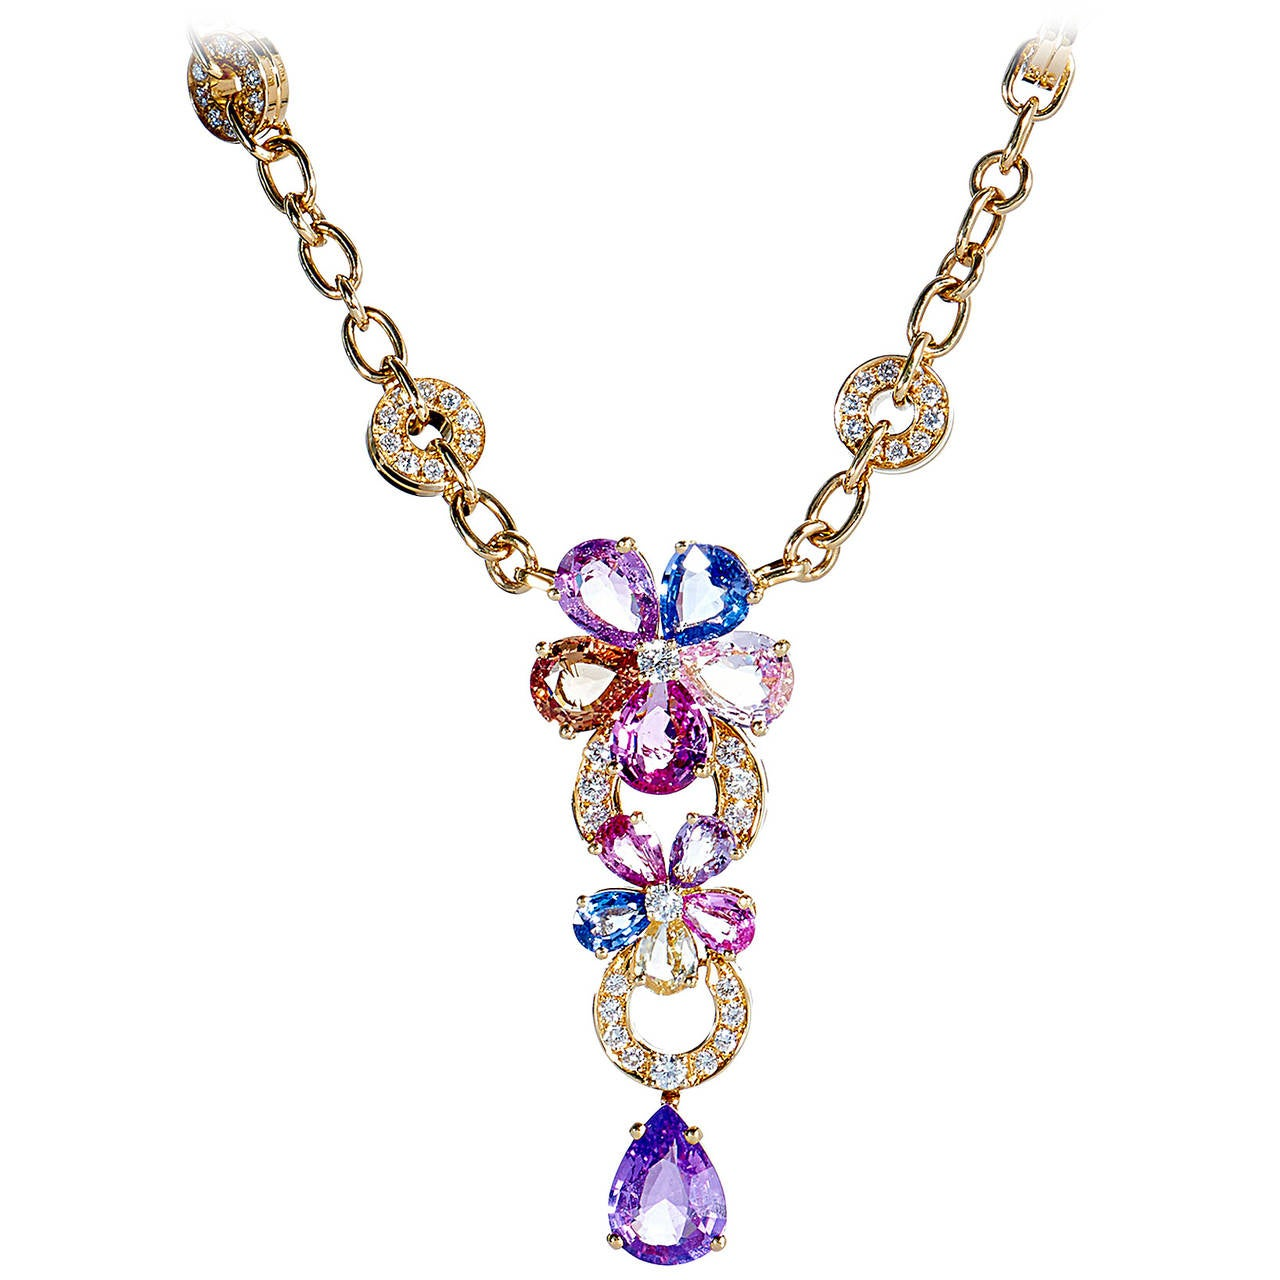 Bvlgari Multicolor Sapphire Flower Necklace At 1stdibs